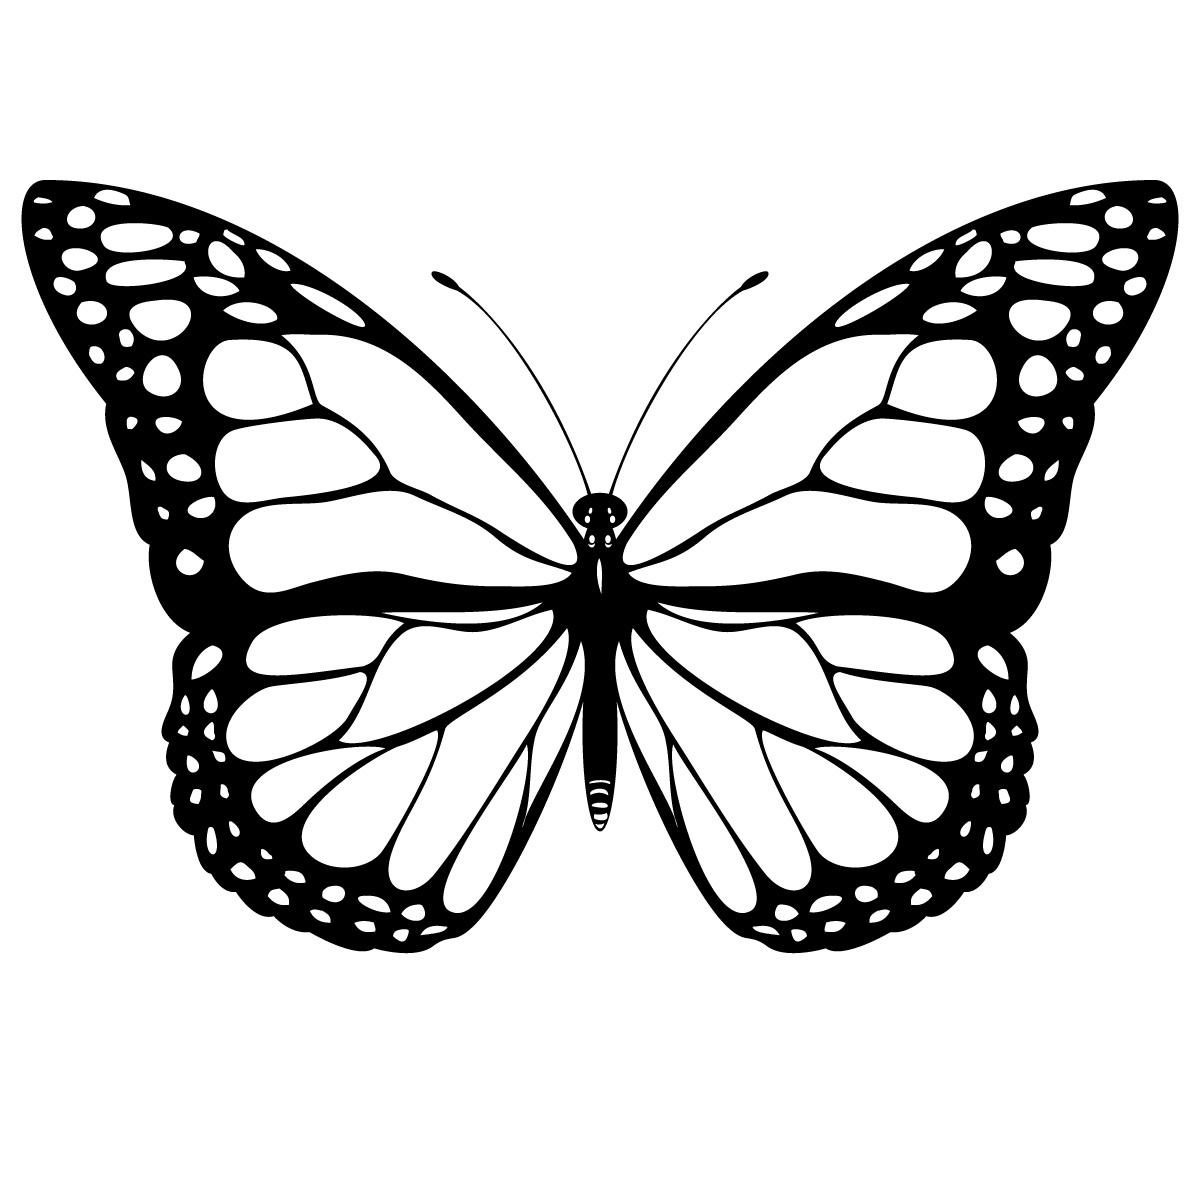 Butterfly Drawing With Details